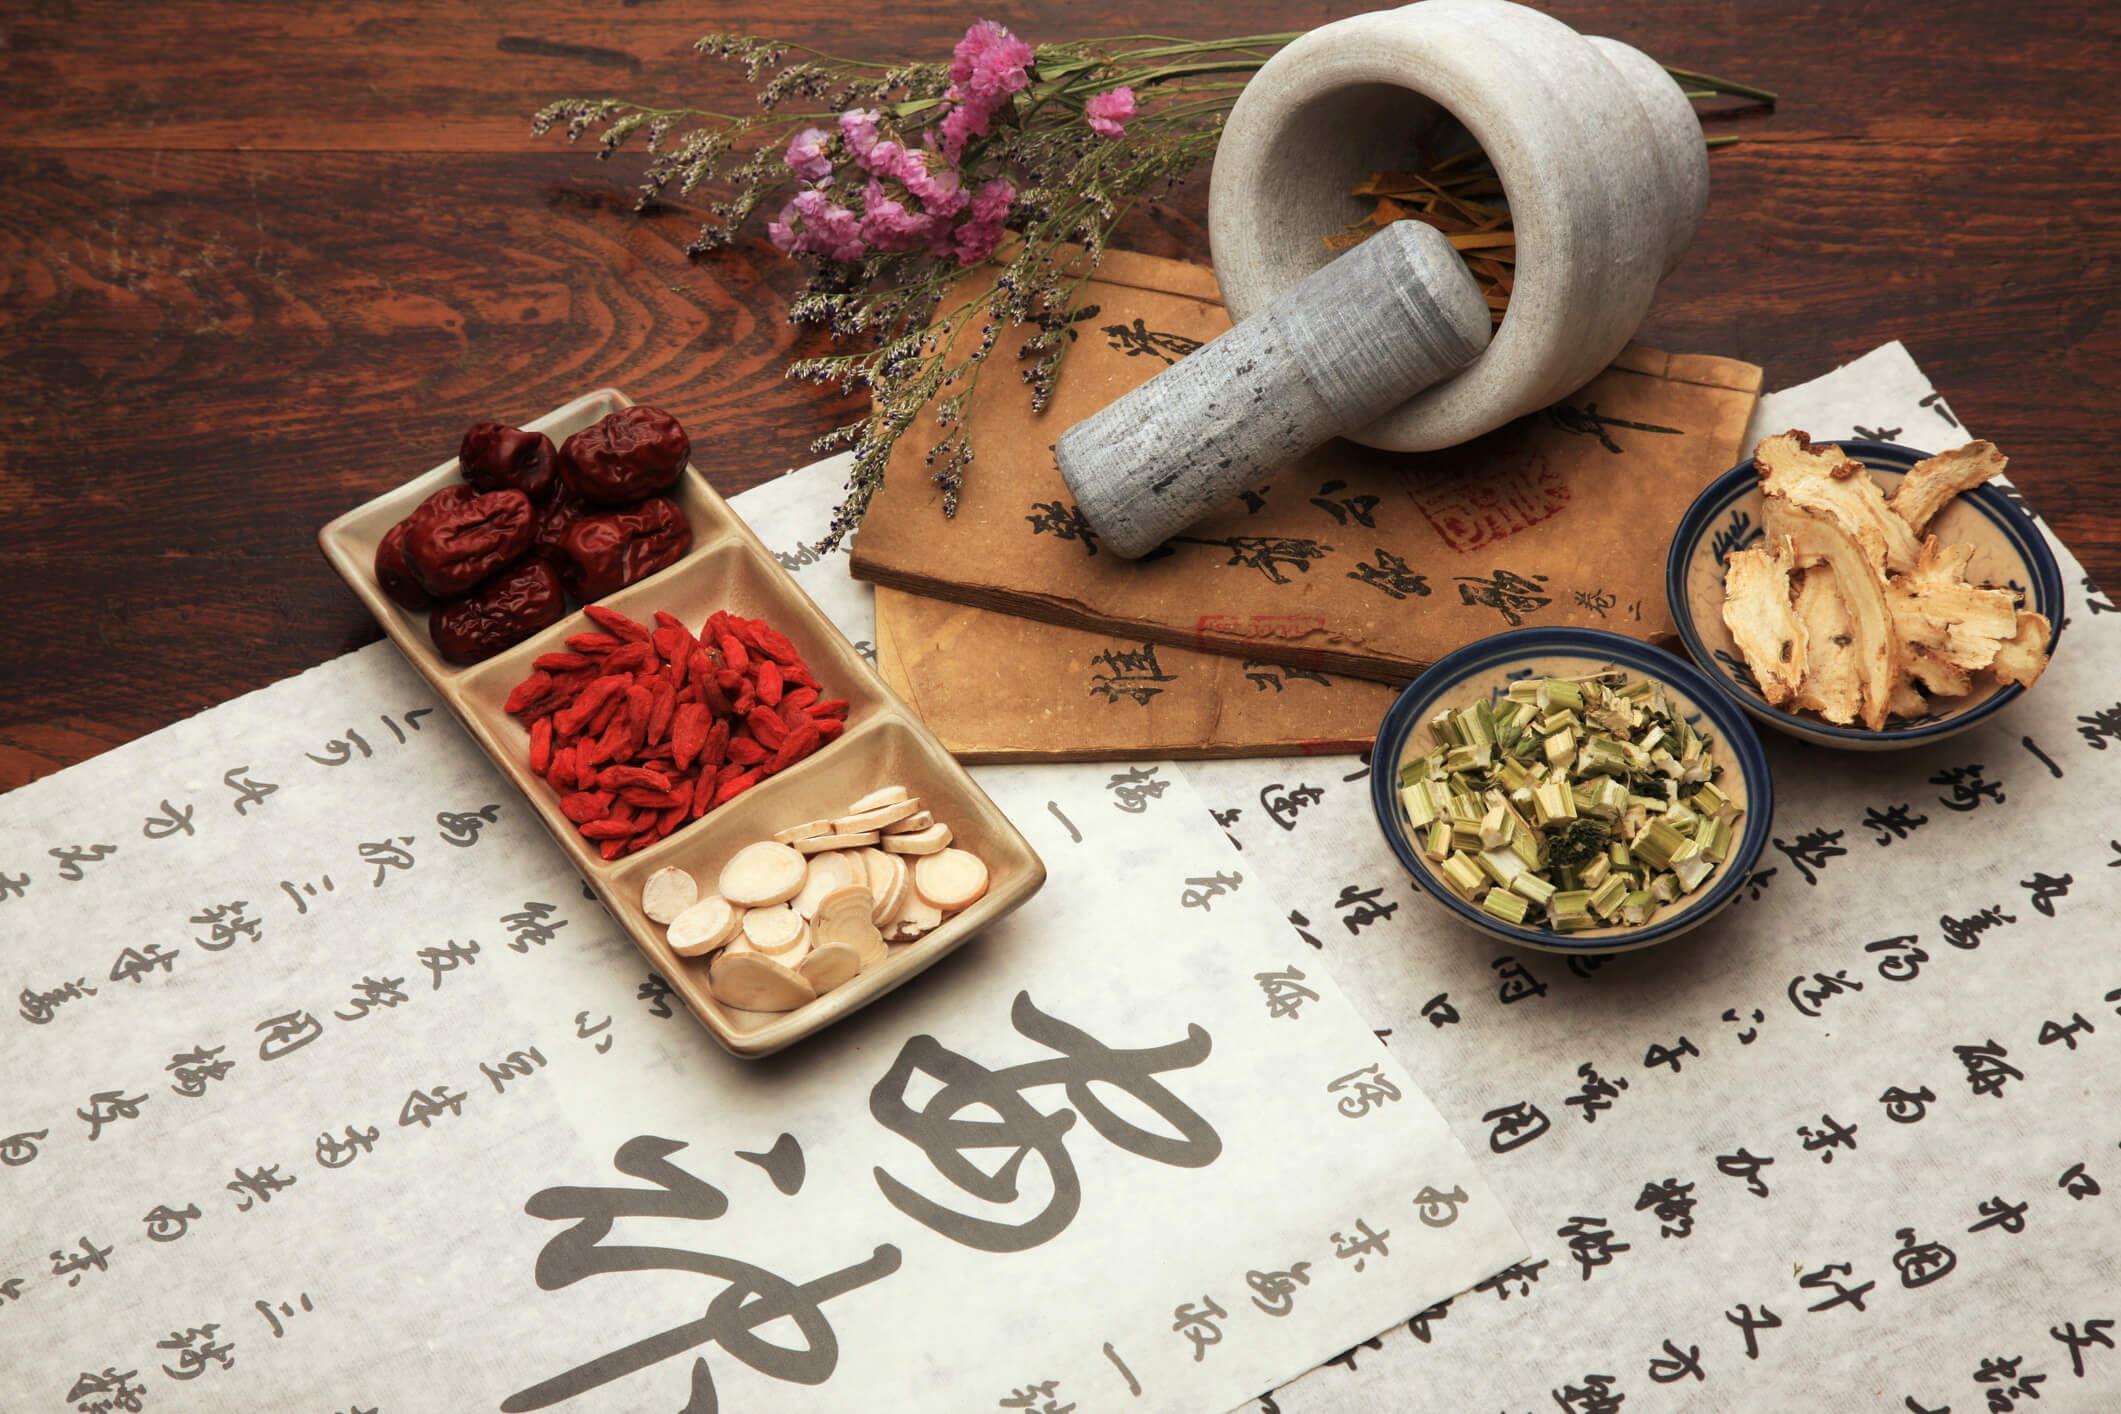 Chinese Herbal medicine & pestle